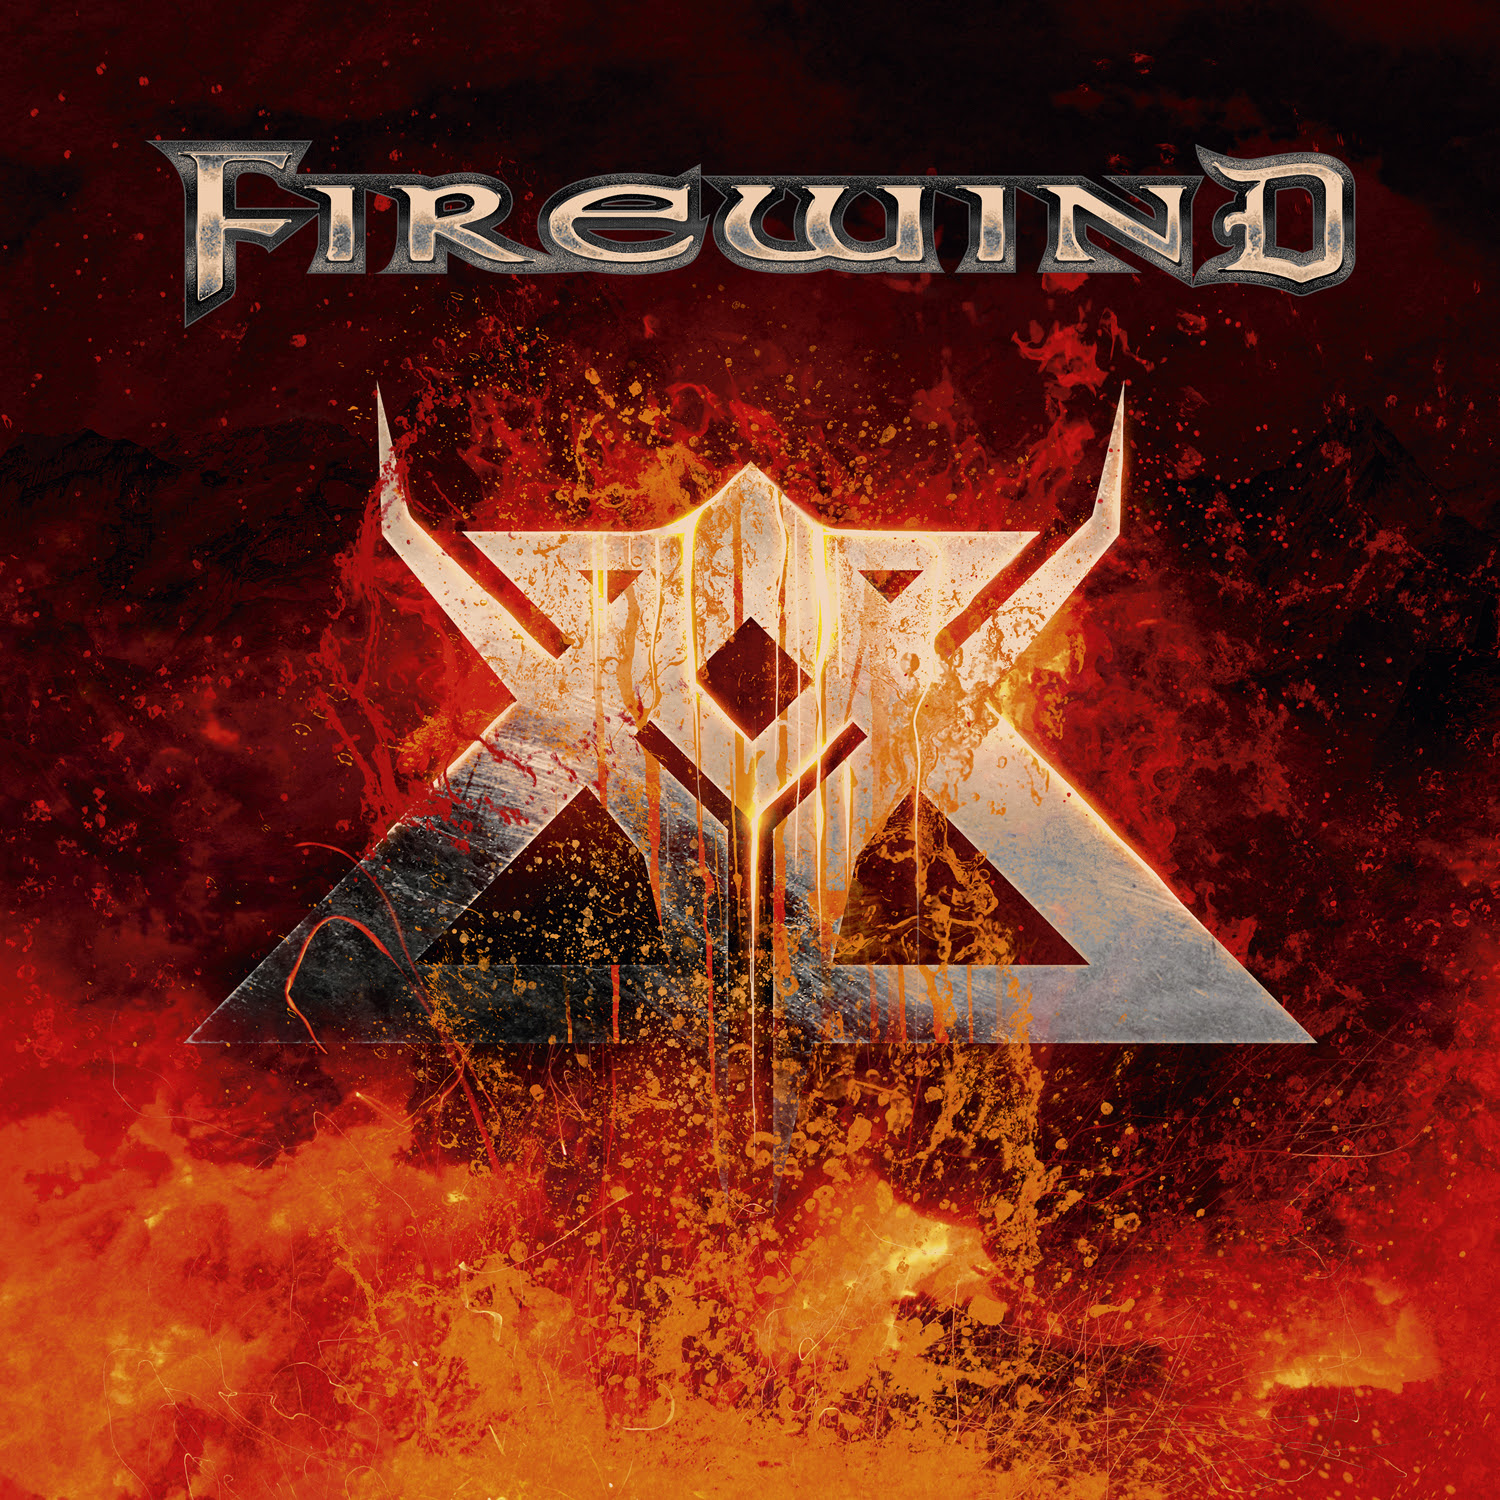 Gus G interview to talk about the Firewind album